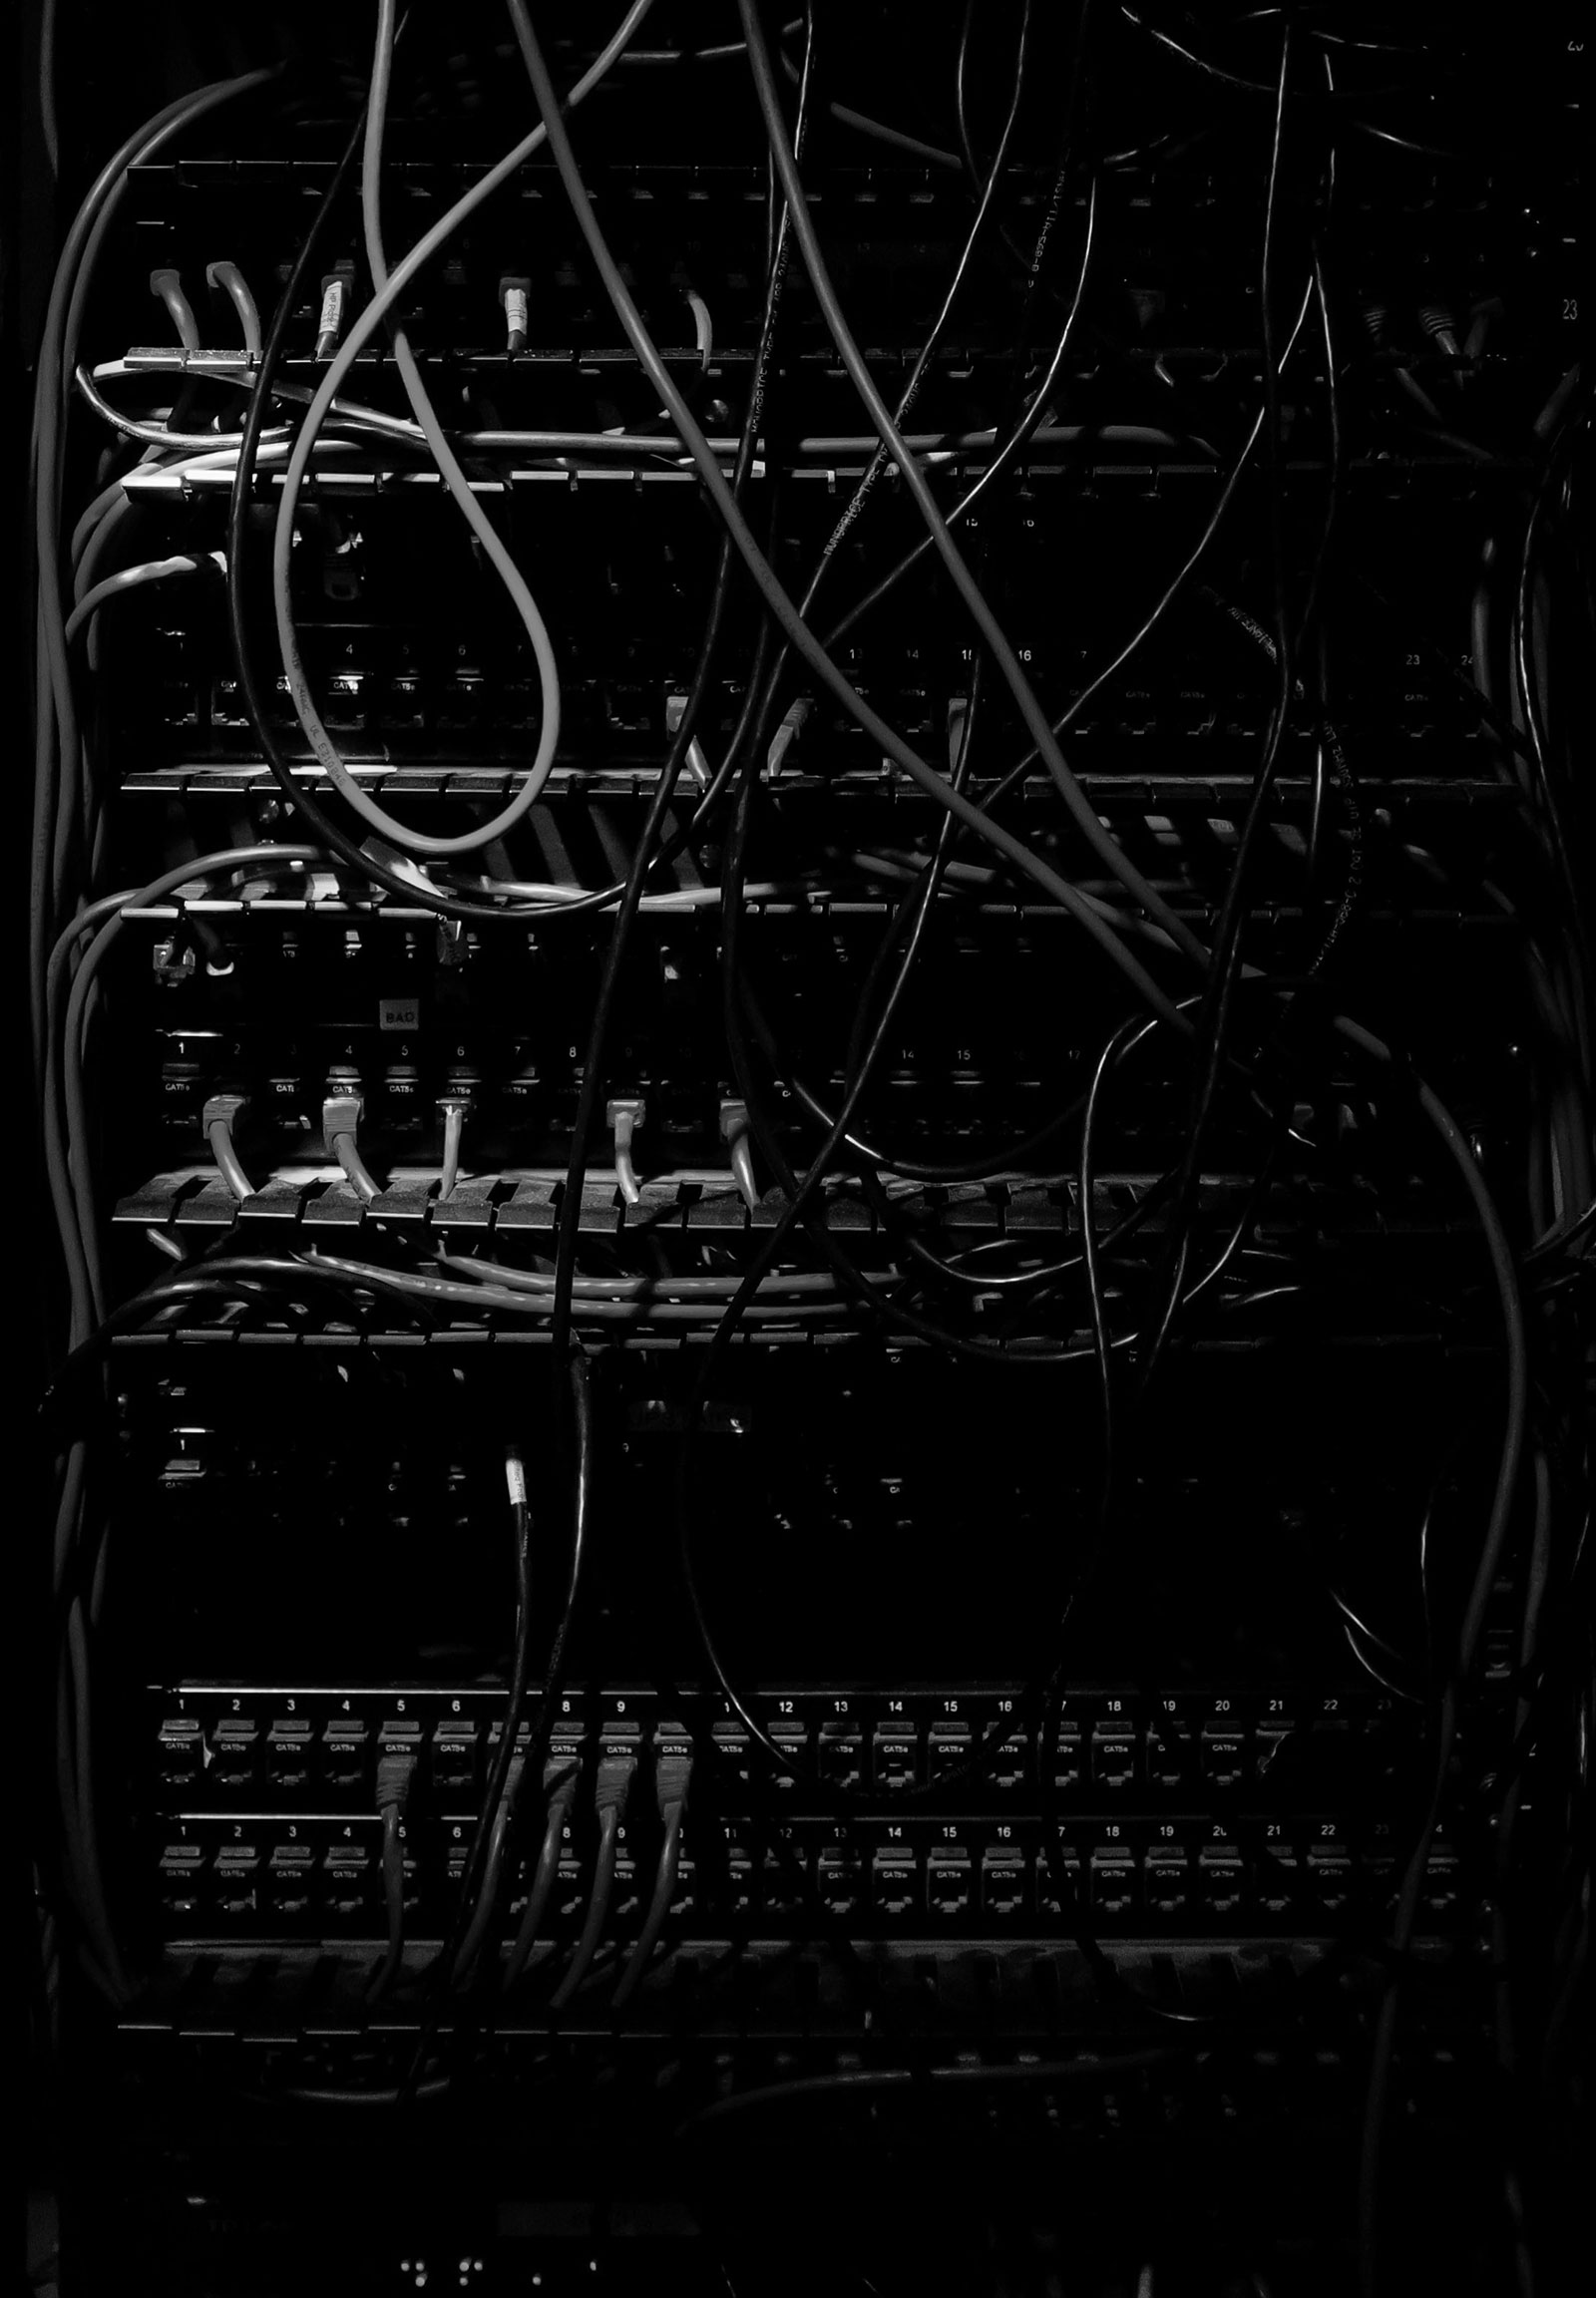 Parts of a dimly lit server rack